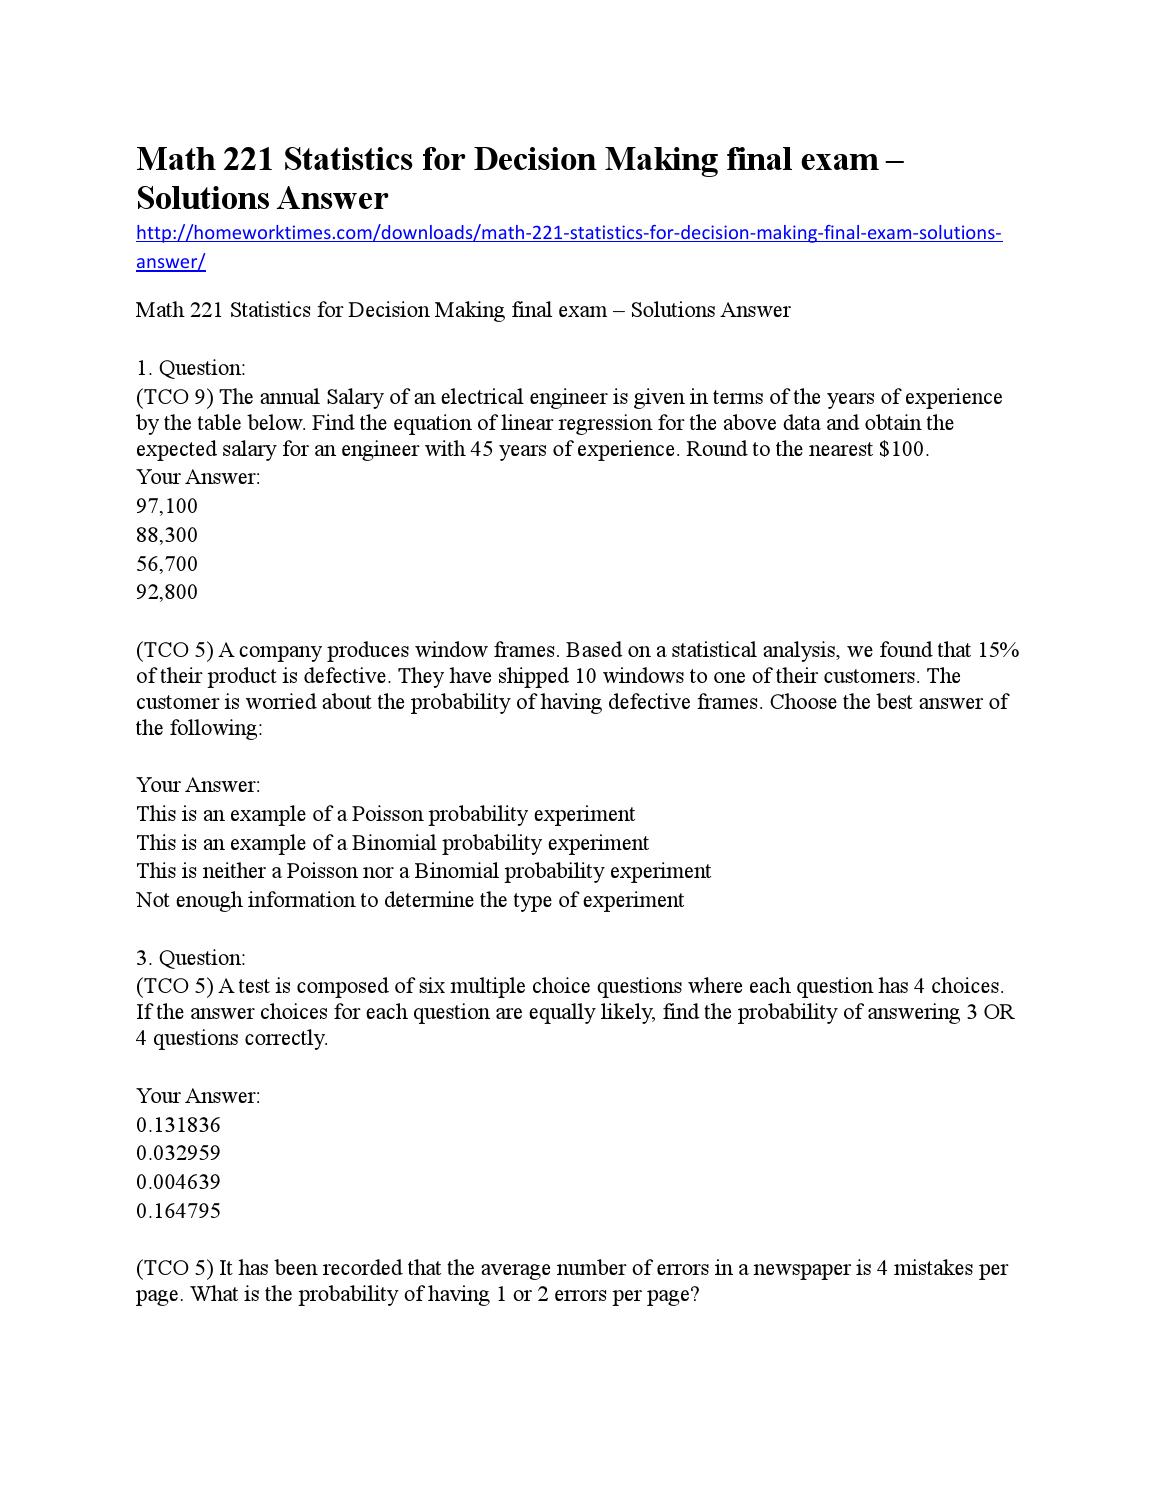 Math 221 statistics for decision making final exam by